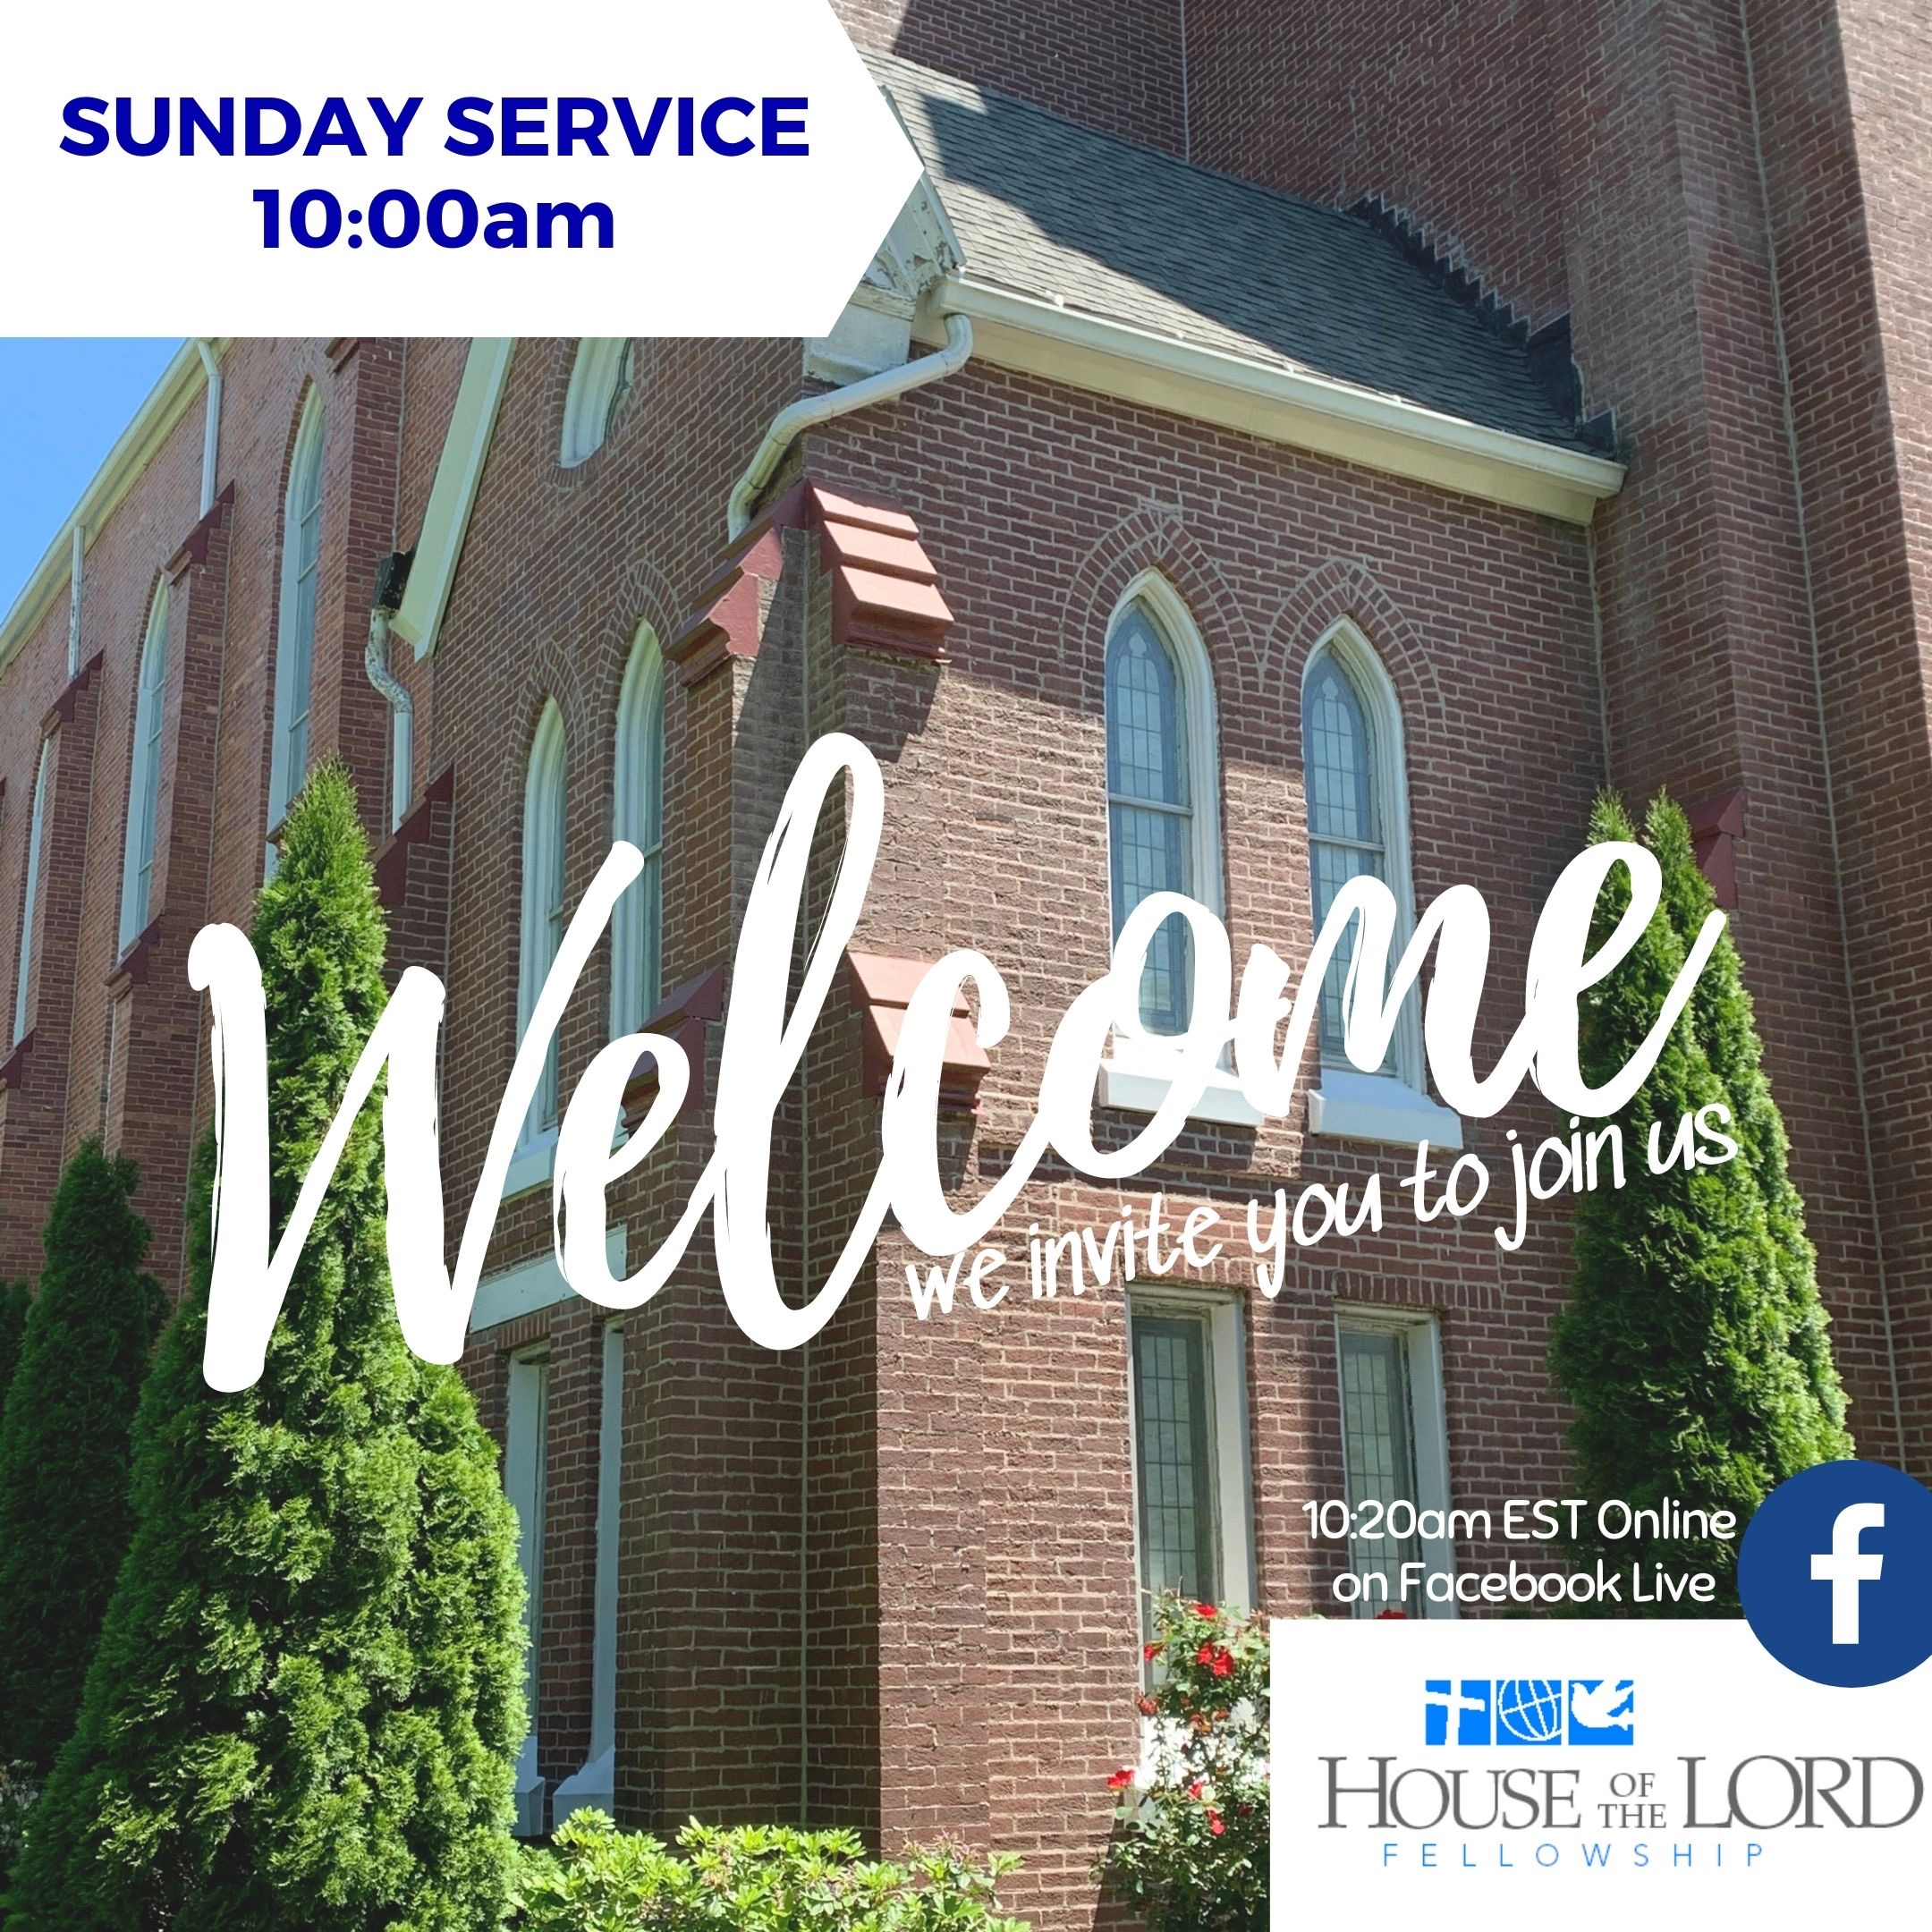 Sunday Services at HOLF